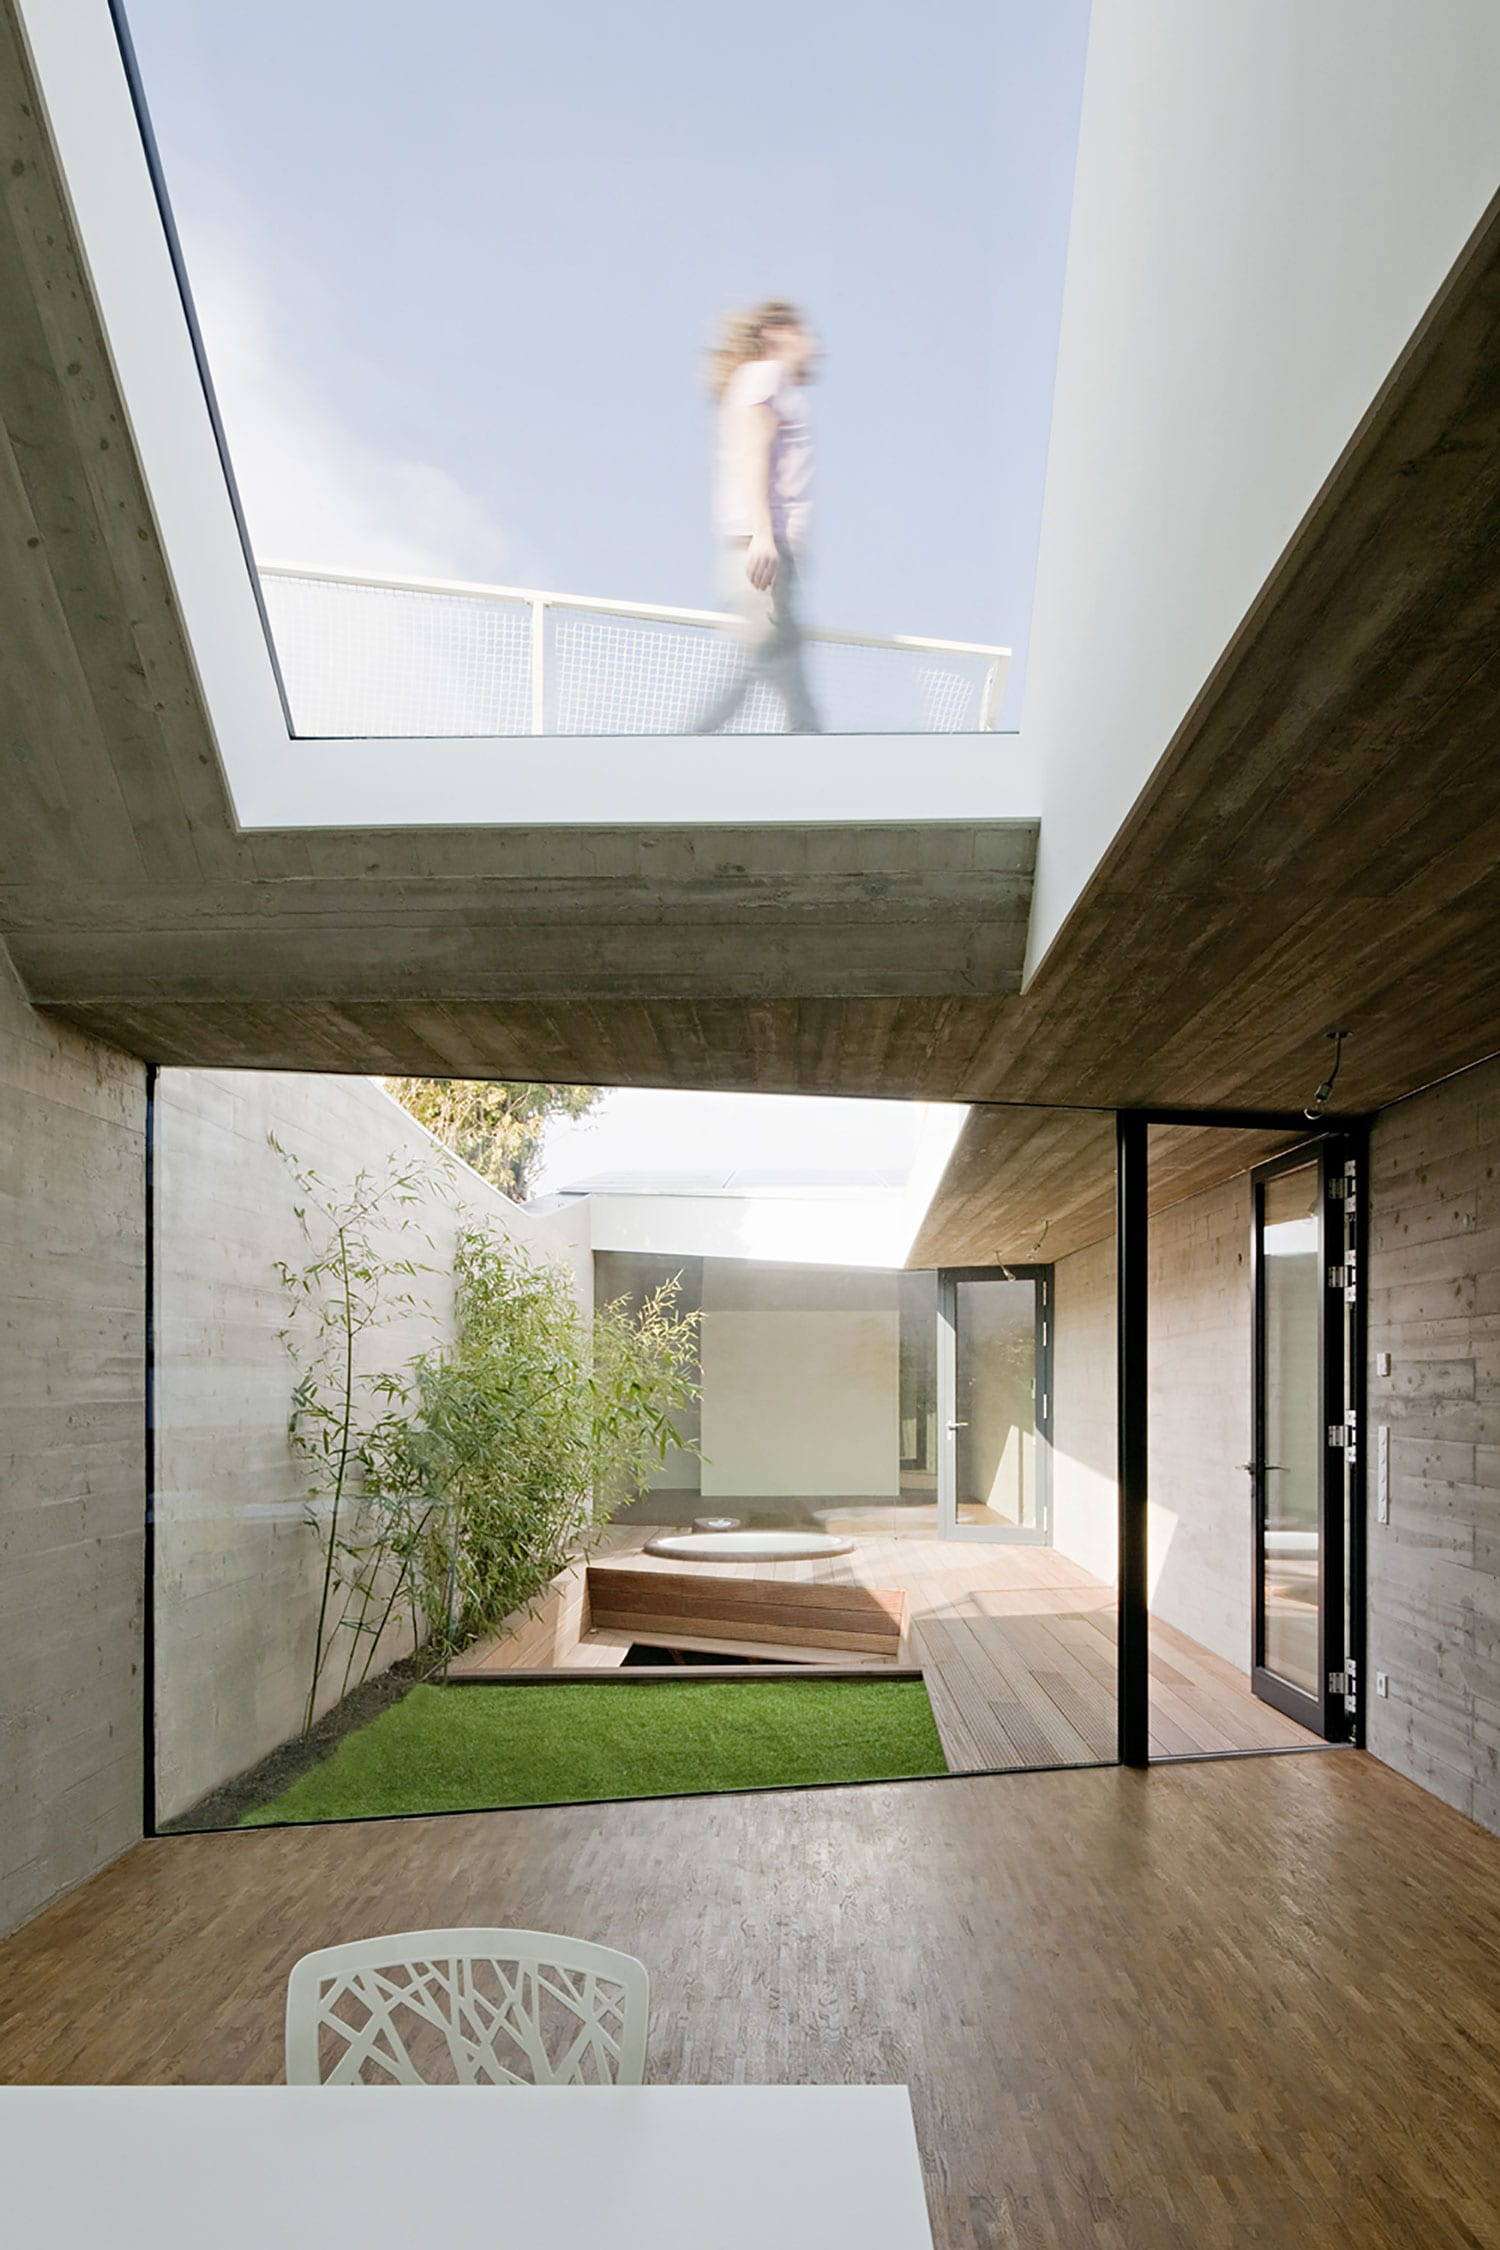 CJ5 House by Caramel Architekten | Yellowtrace